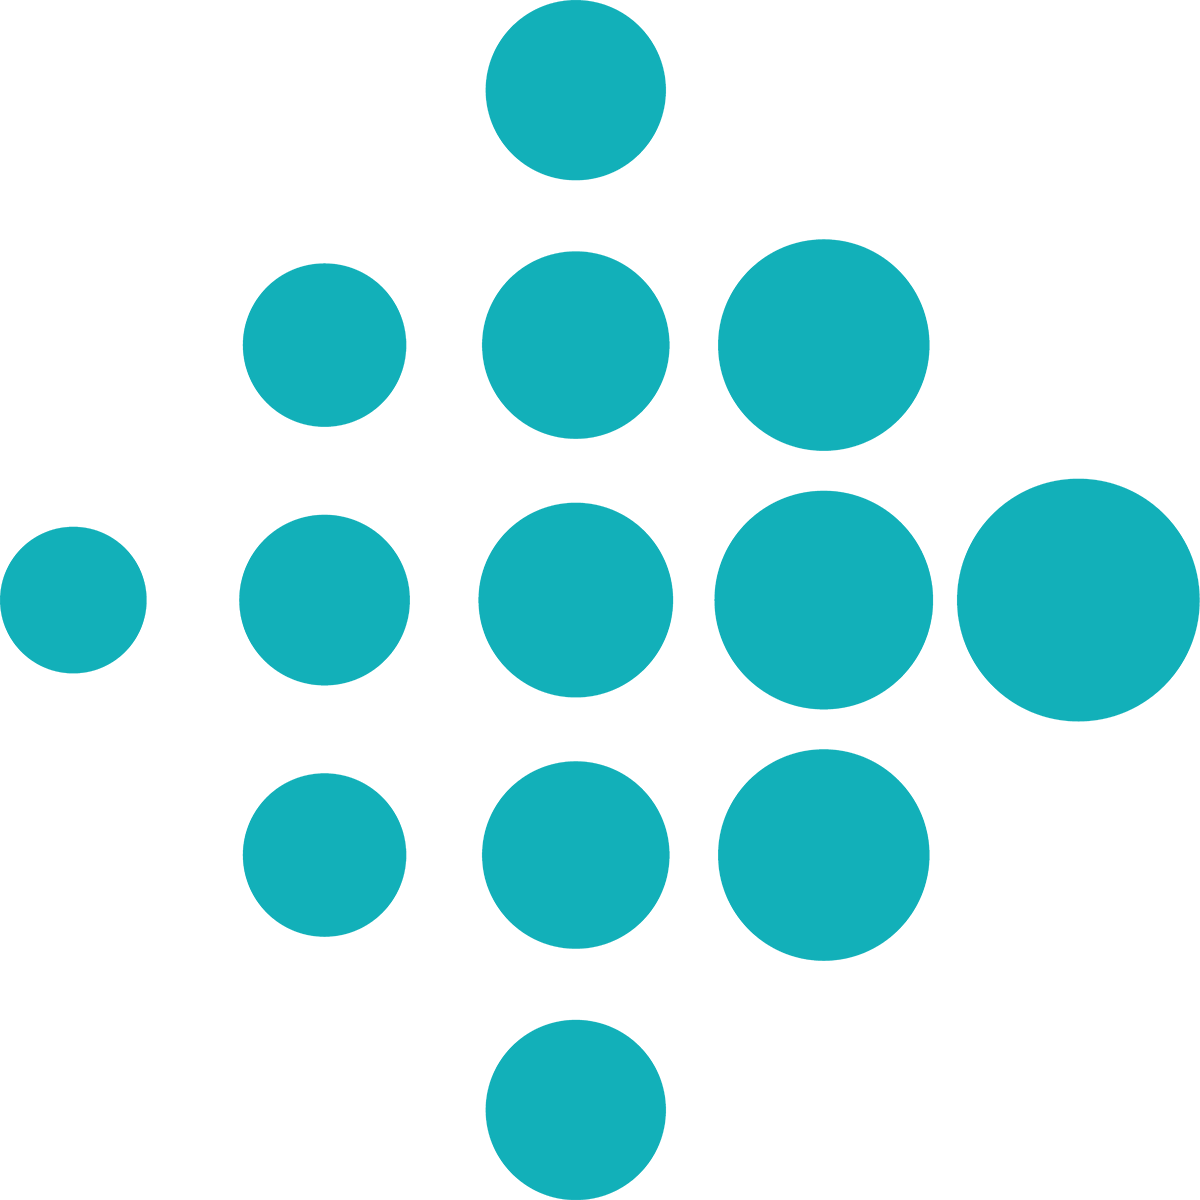 fitbit_logo_1200.png (1200×1200)